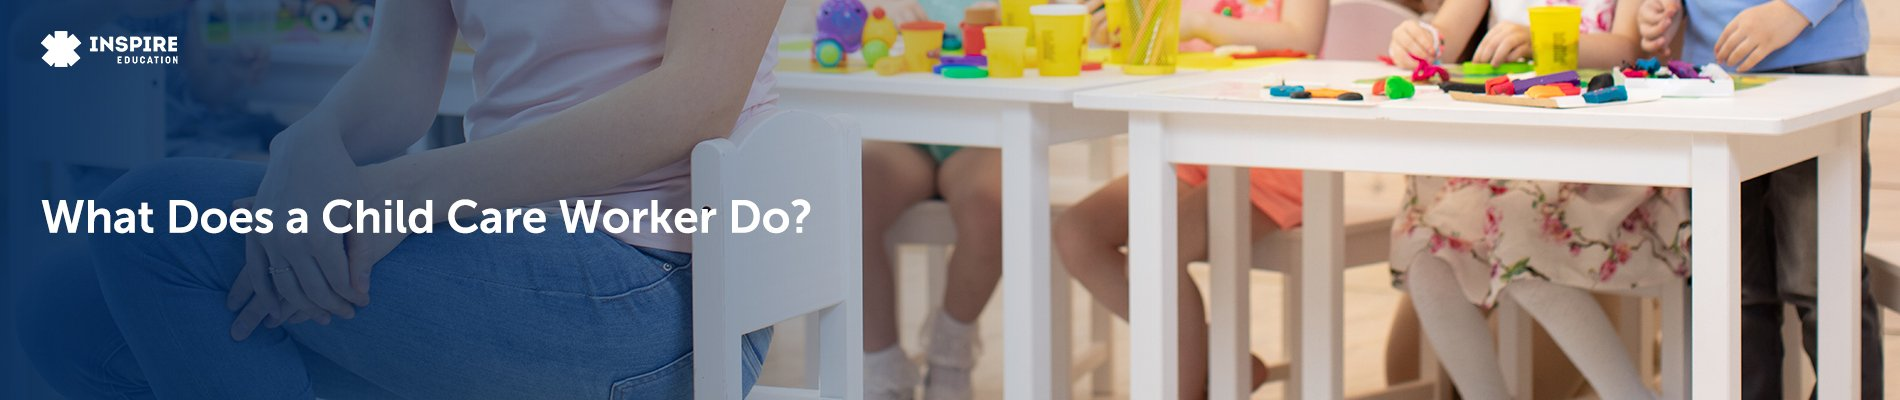 What does a child care worker do?